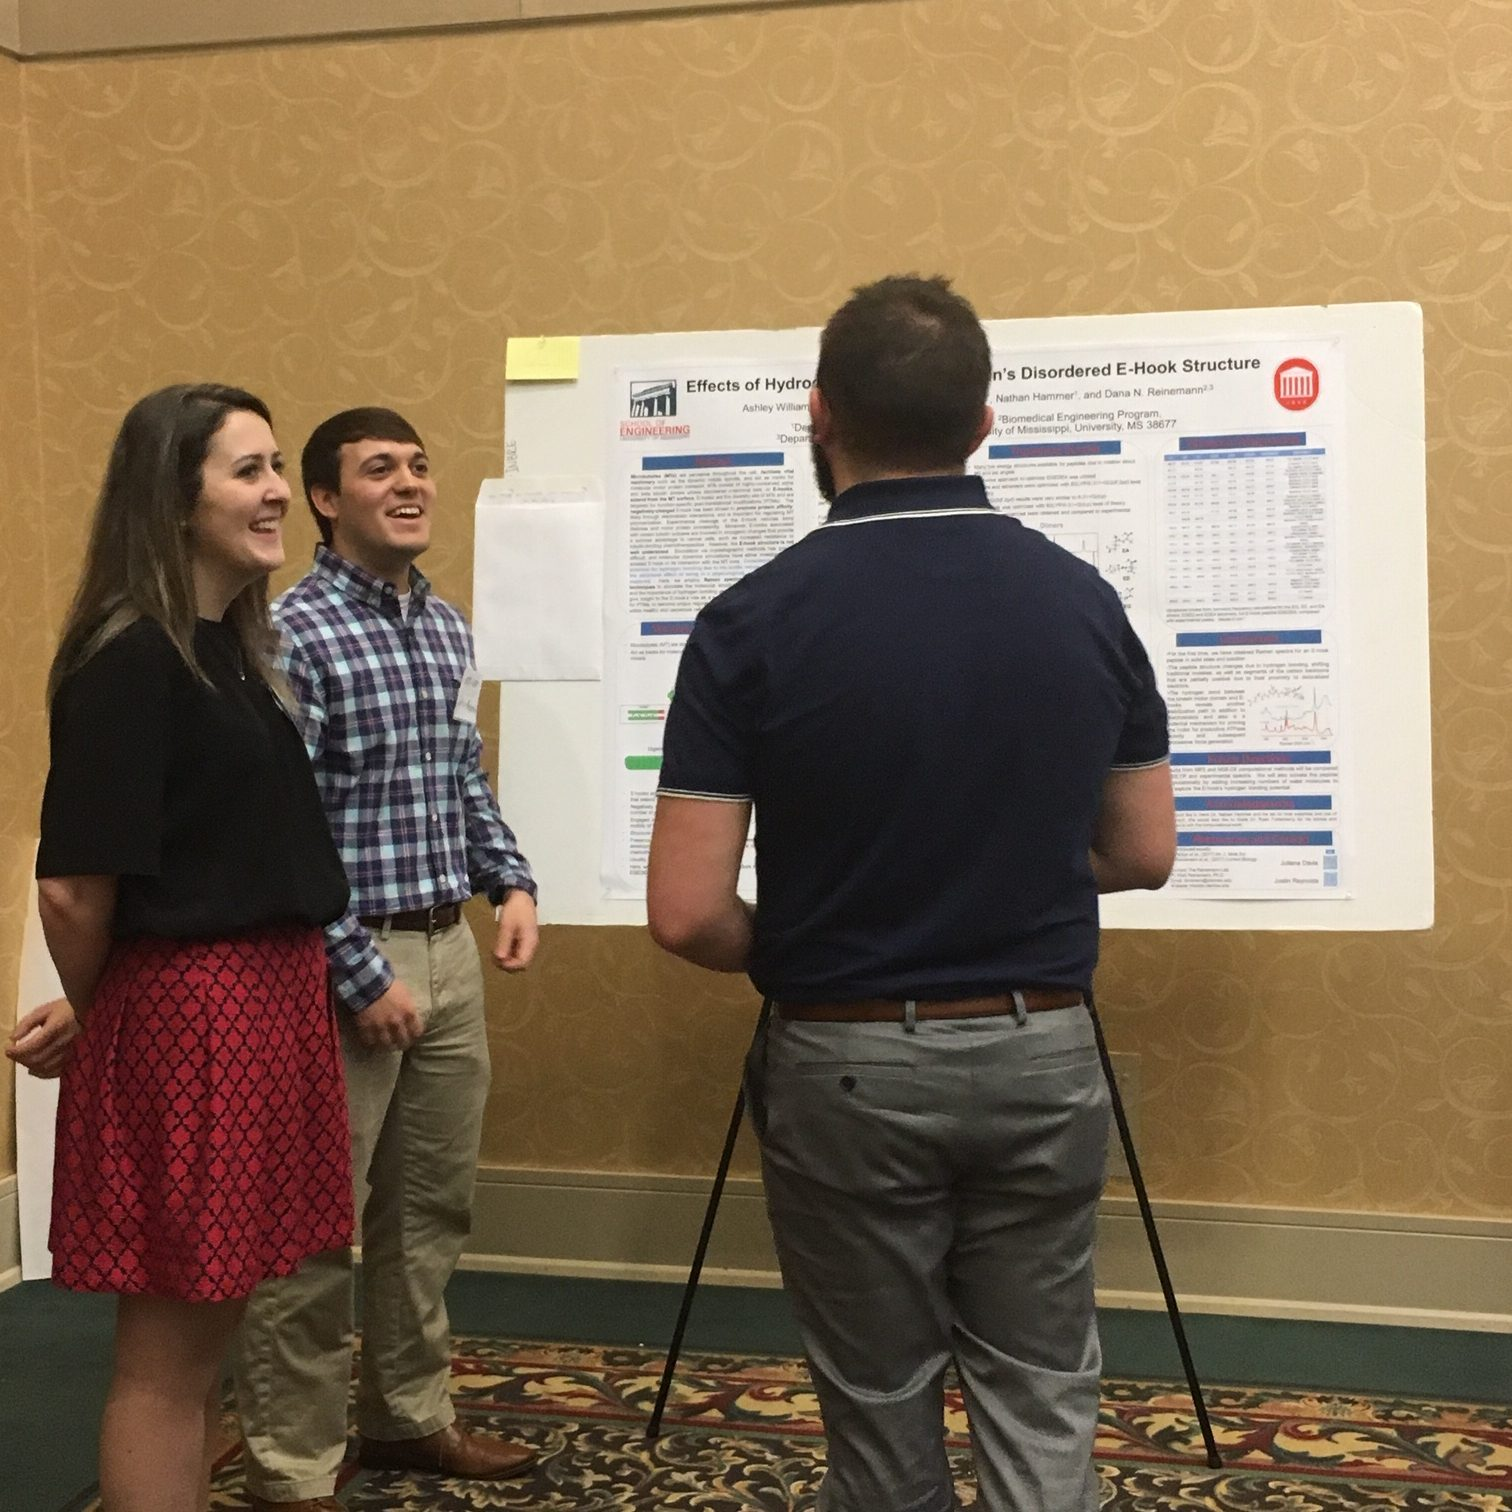 Students present research at poster session